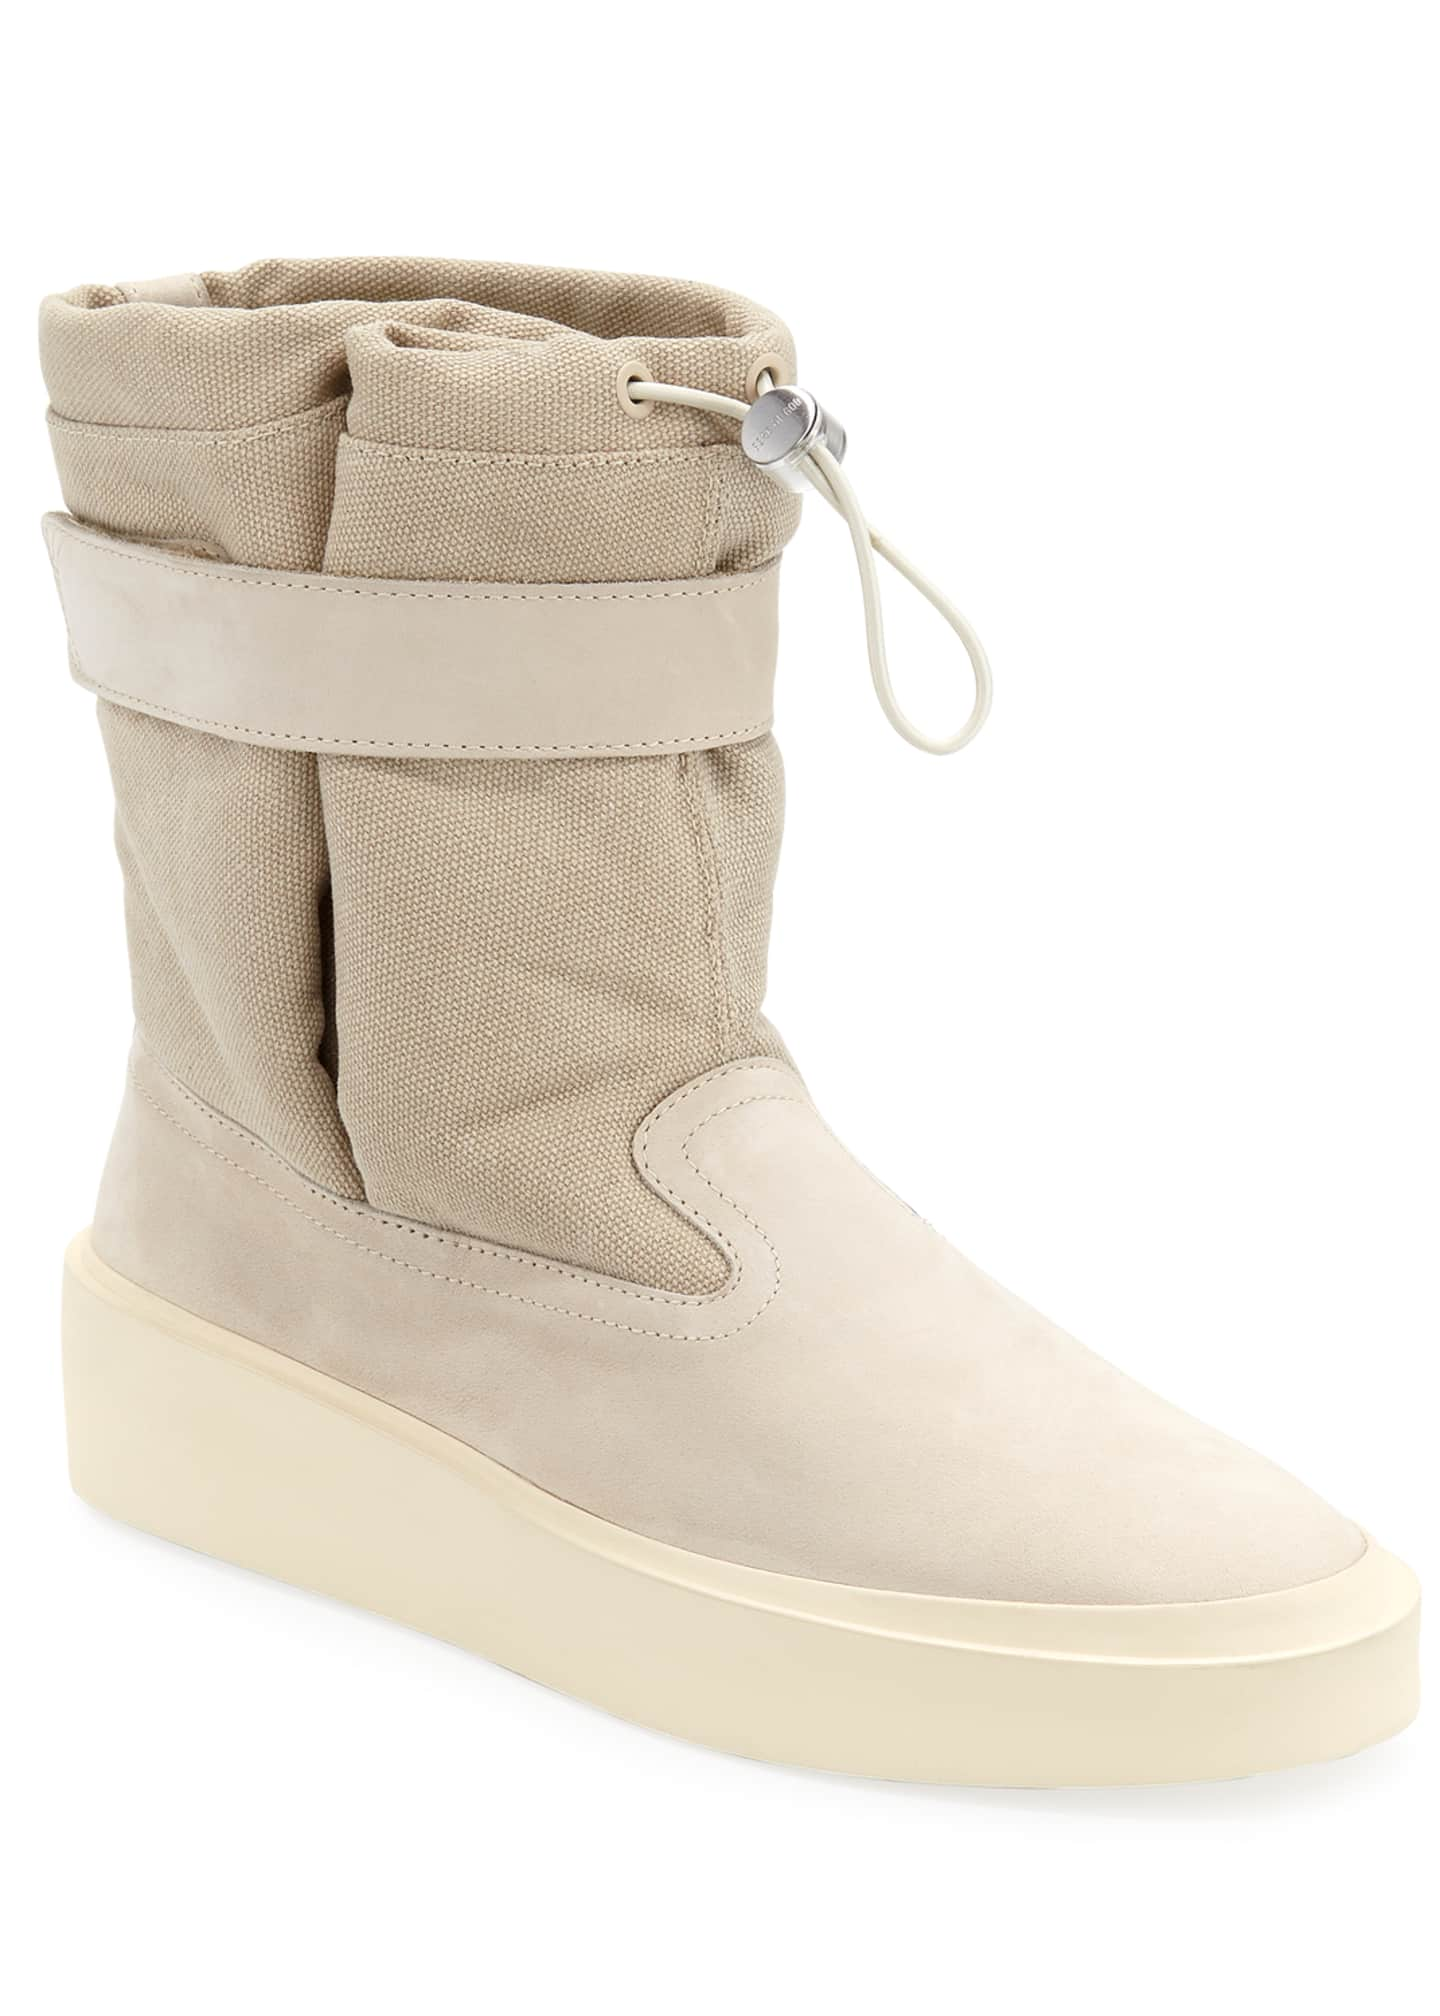 Fear of God Men's Ski Lounge Suede and